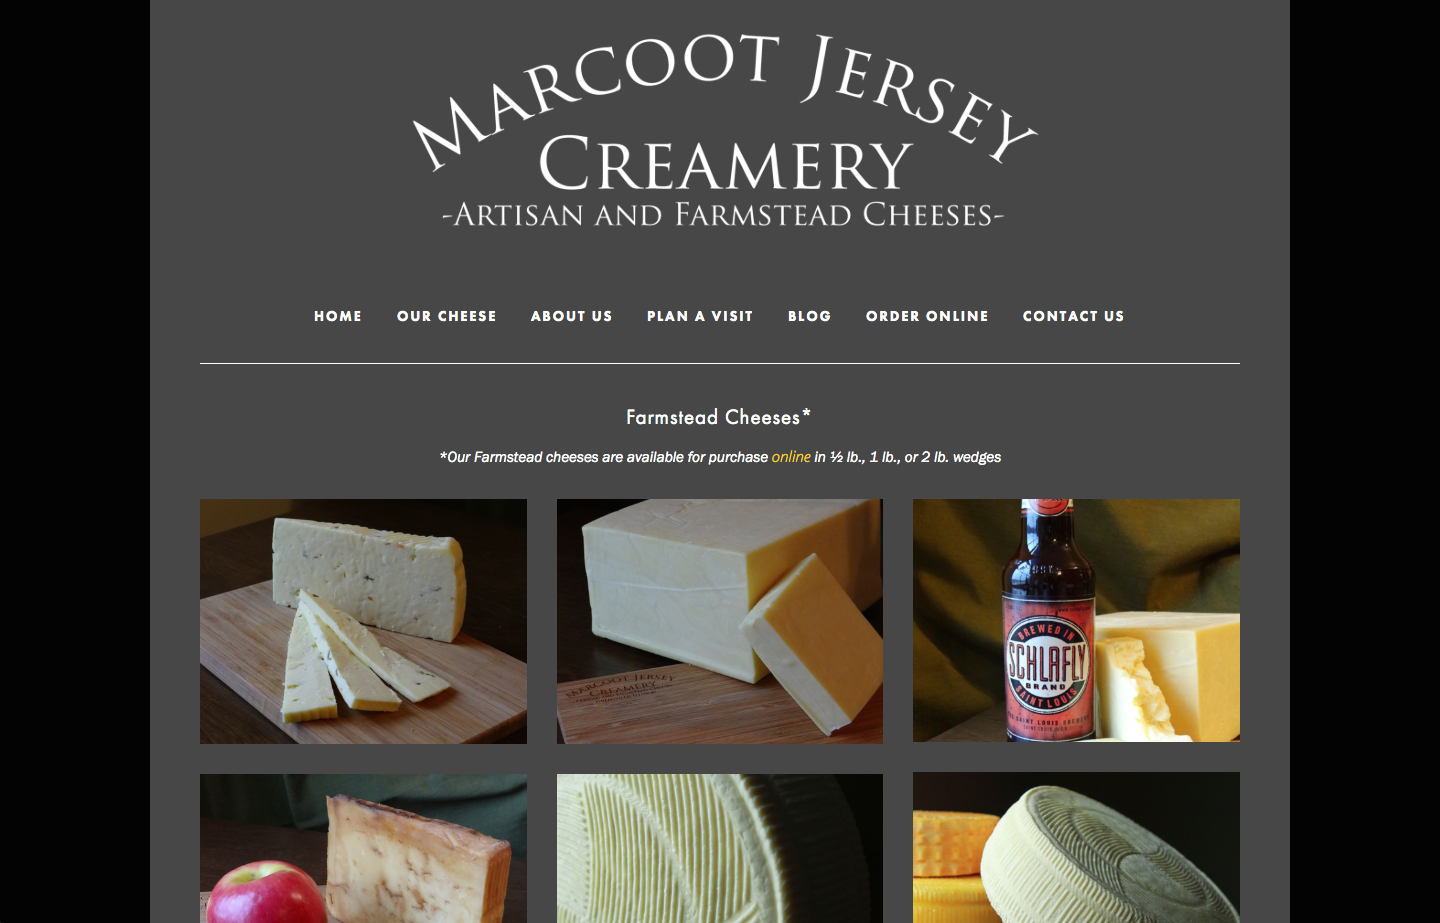 webdesign-greenapplelane-marcootcreamery1.png